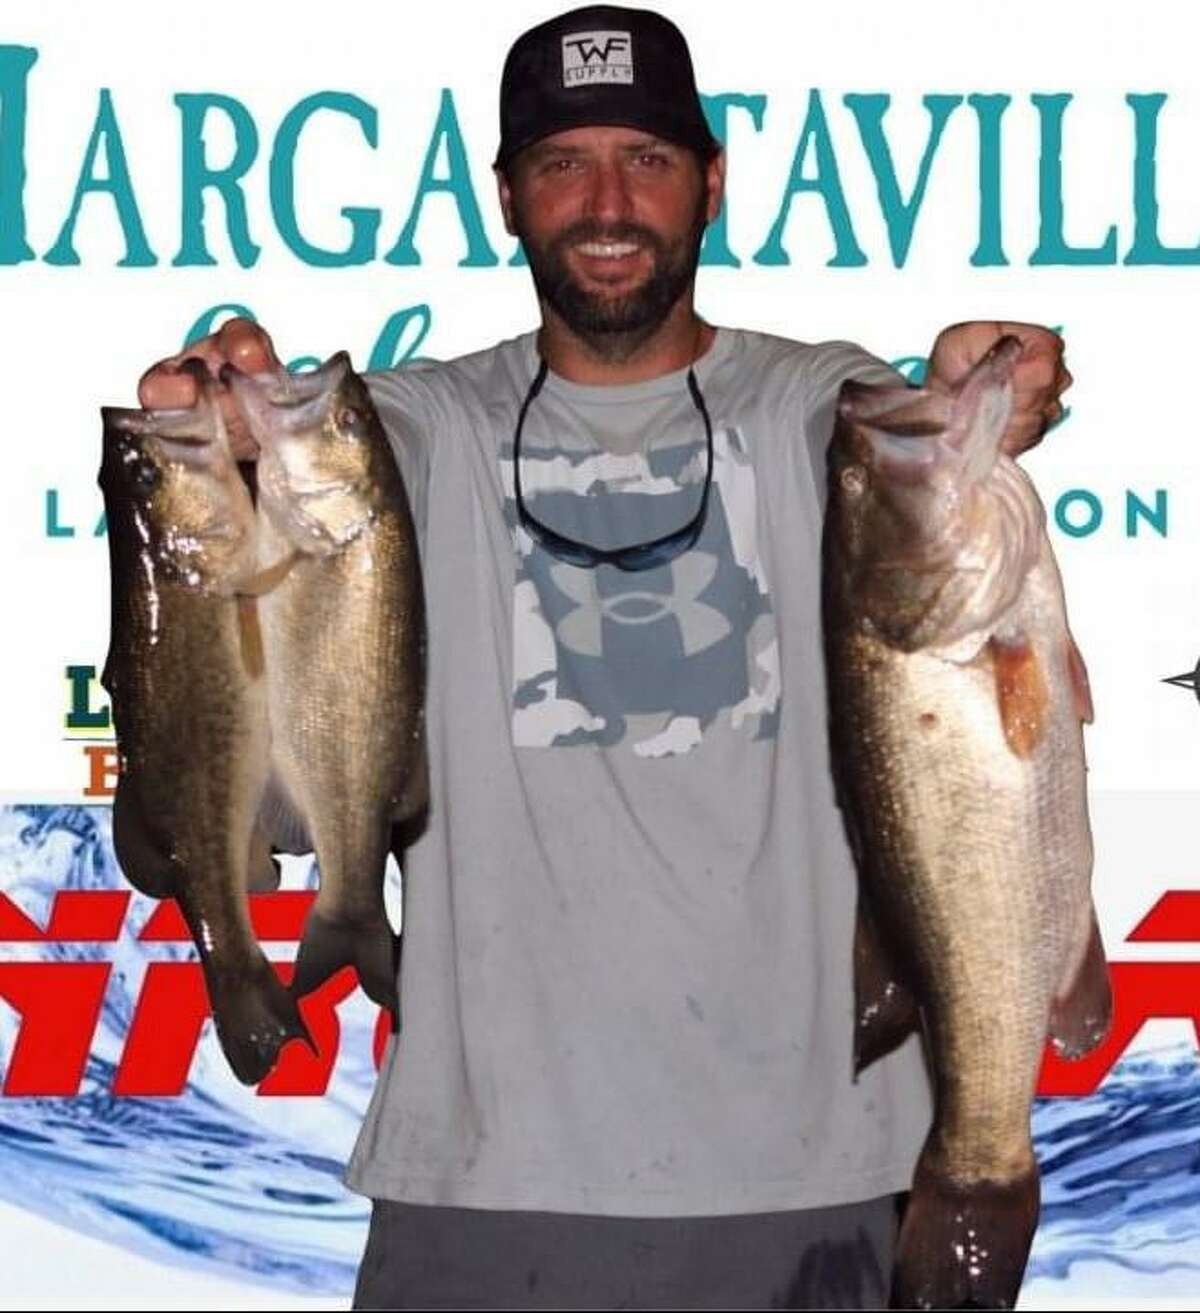 Taylor Robbins and Jamie Cooley came in second place in the CONROEBASS Tuesday Tournament with a weight of 11.59 pounds.